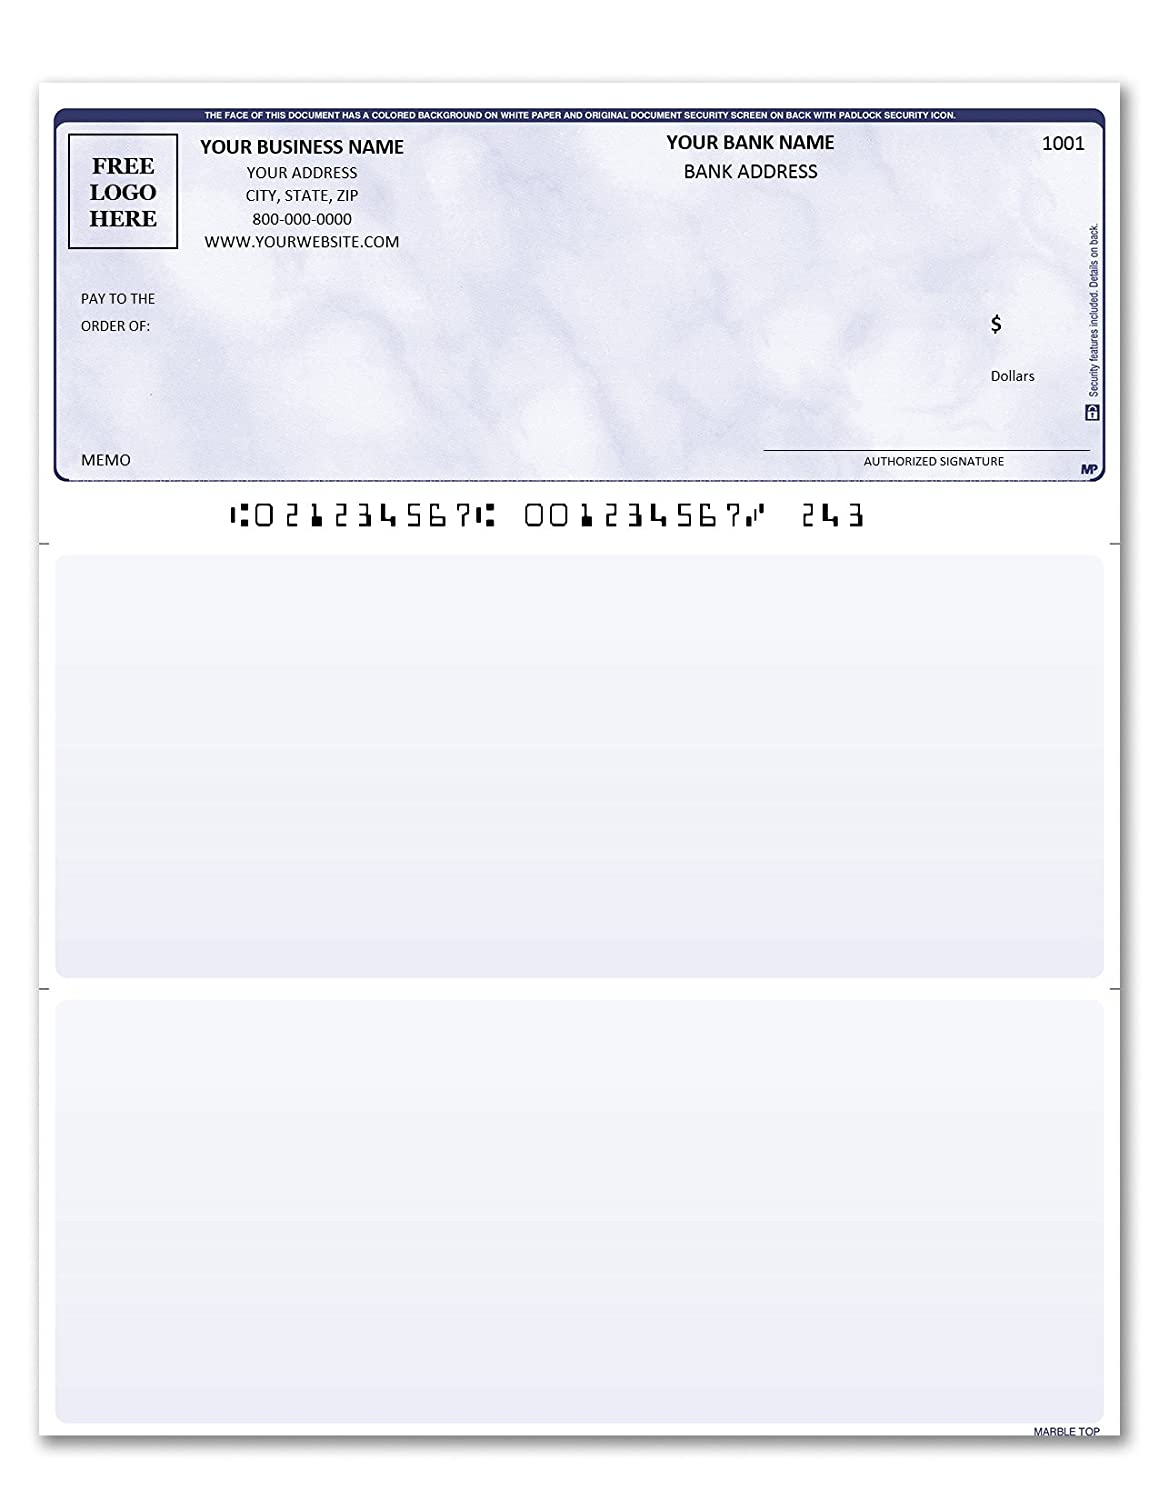 1000 Marble Purple Custom Printed Laser Computer Checks Compatible with Quickbooks//Quicken Check on Top